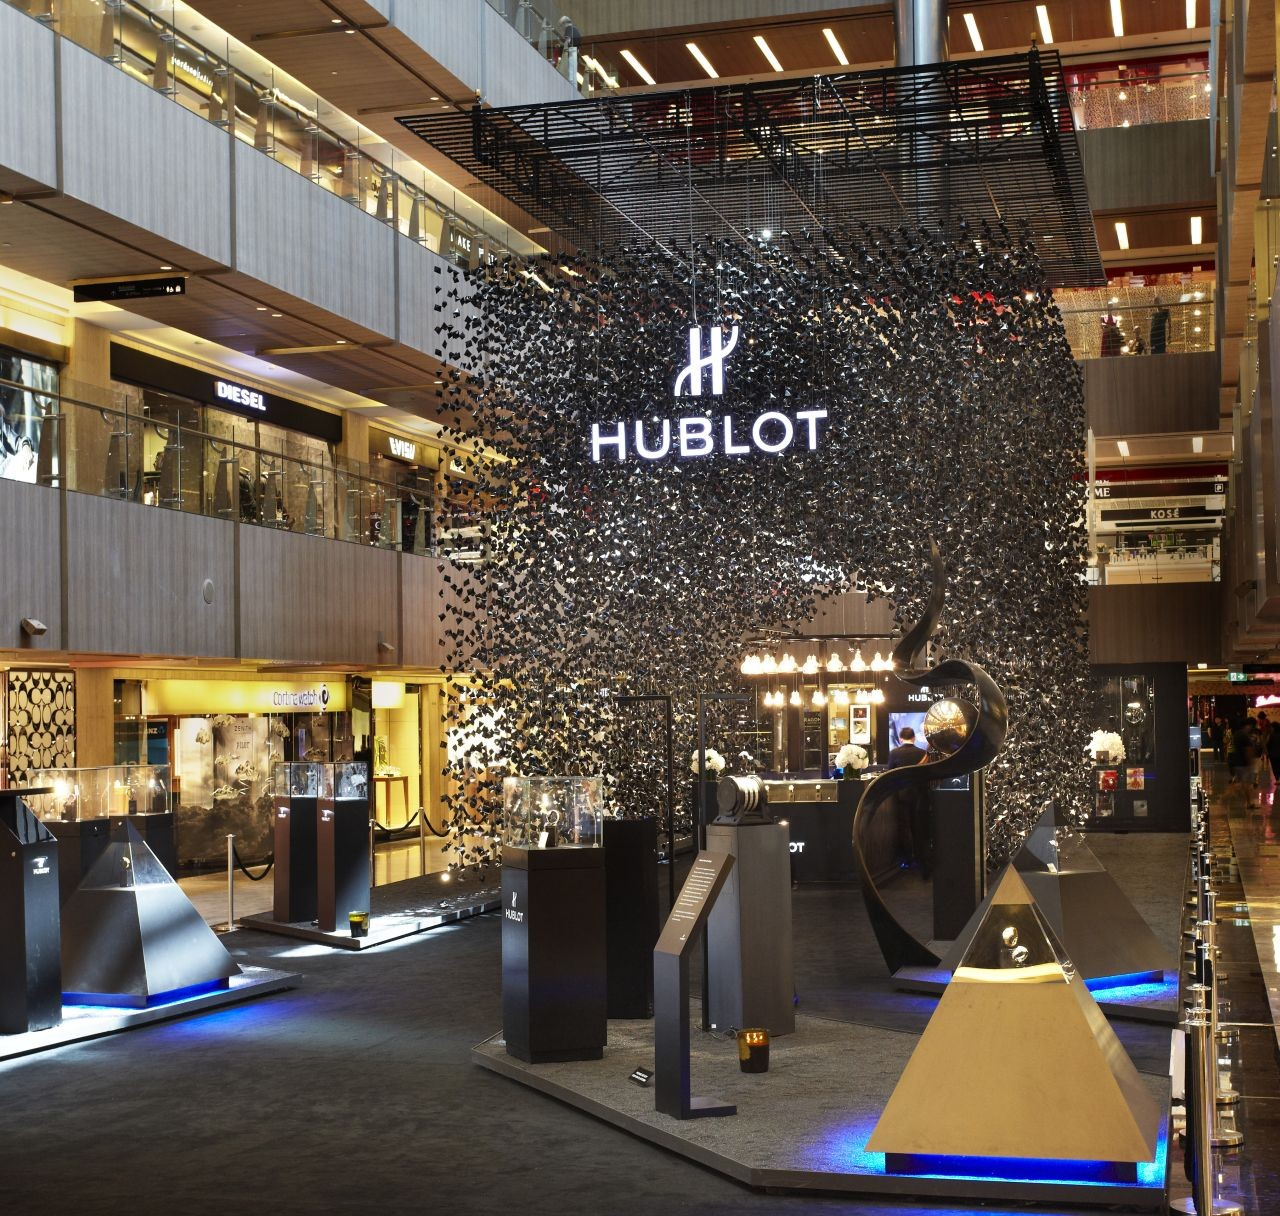 Hublot Popup Store / Asylum, Courtesy of The Hour Glass